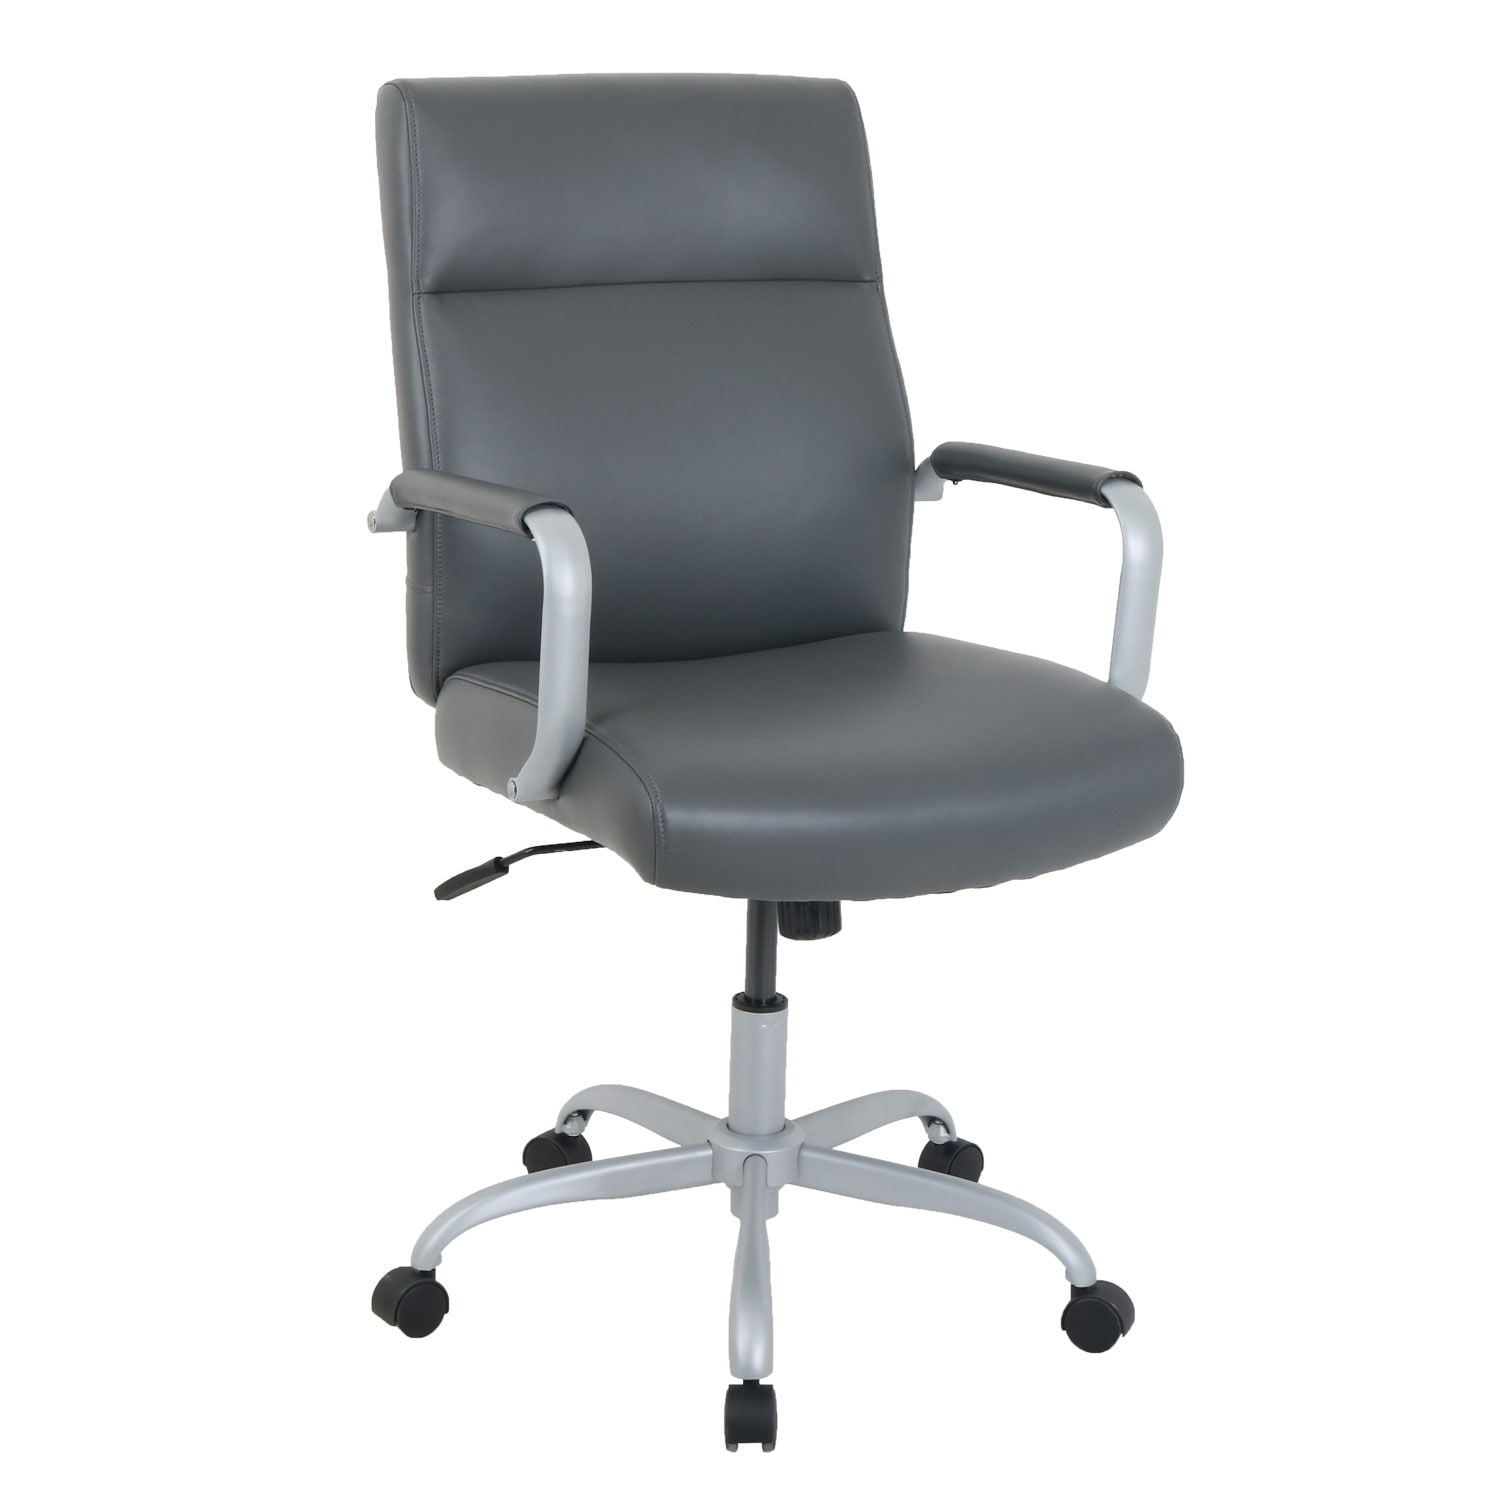 Alera Office Chairs Kathy Ireland By Alera Manitou Series High Back Leather Office Chair